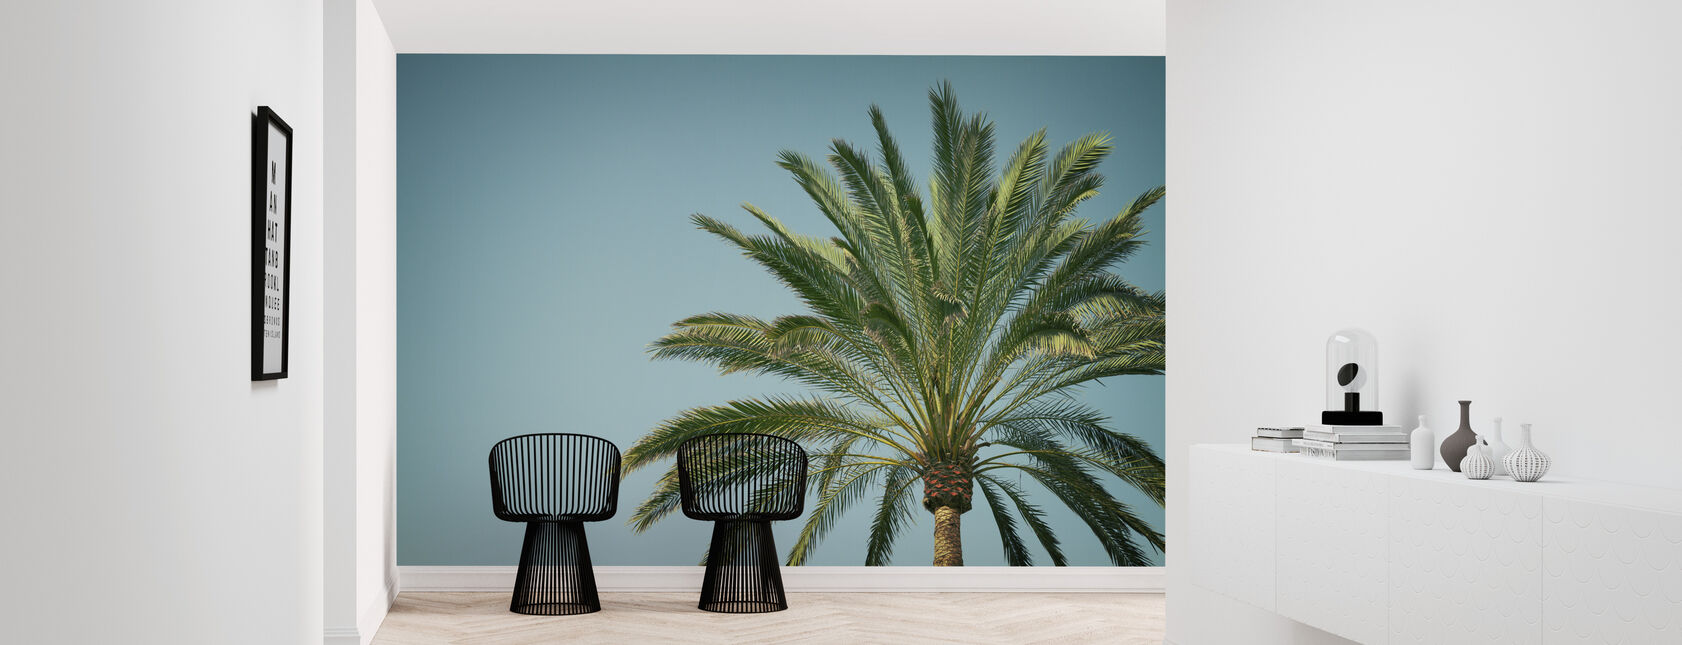 Turquoise wall murals